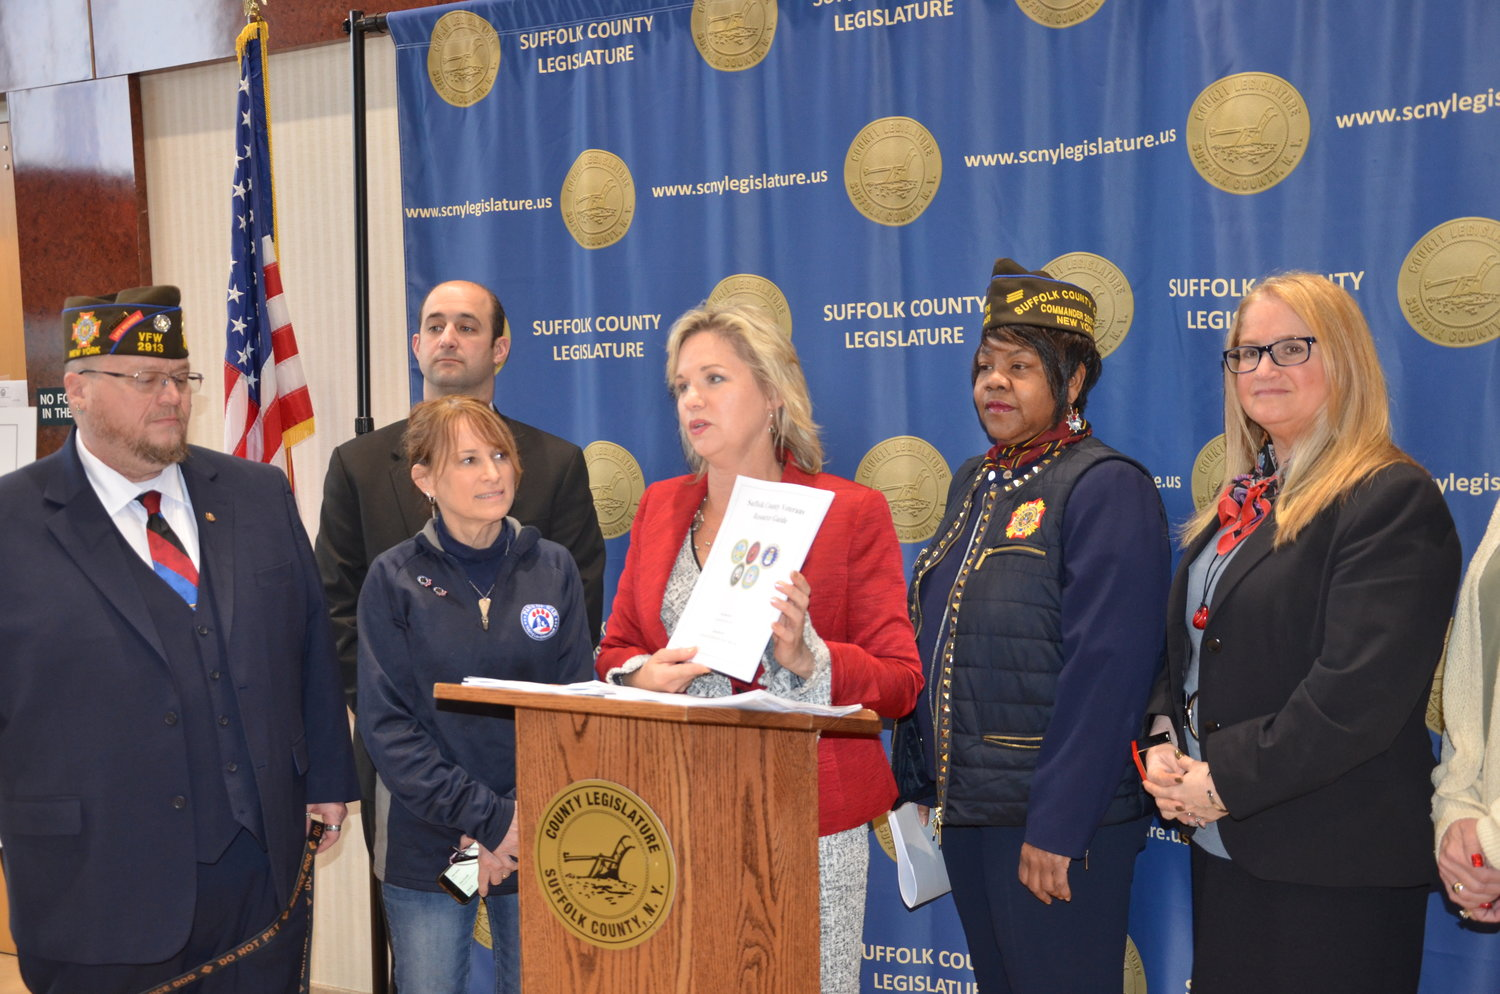 """We have an obligation to ensure that our veterans have quick and reliable access to the services on a moment's notice, and that is what this resource guide accomplishes,"" said Legis. Sarah Anker (center), whose legislation enabled the guide's creation."